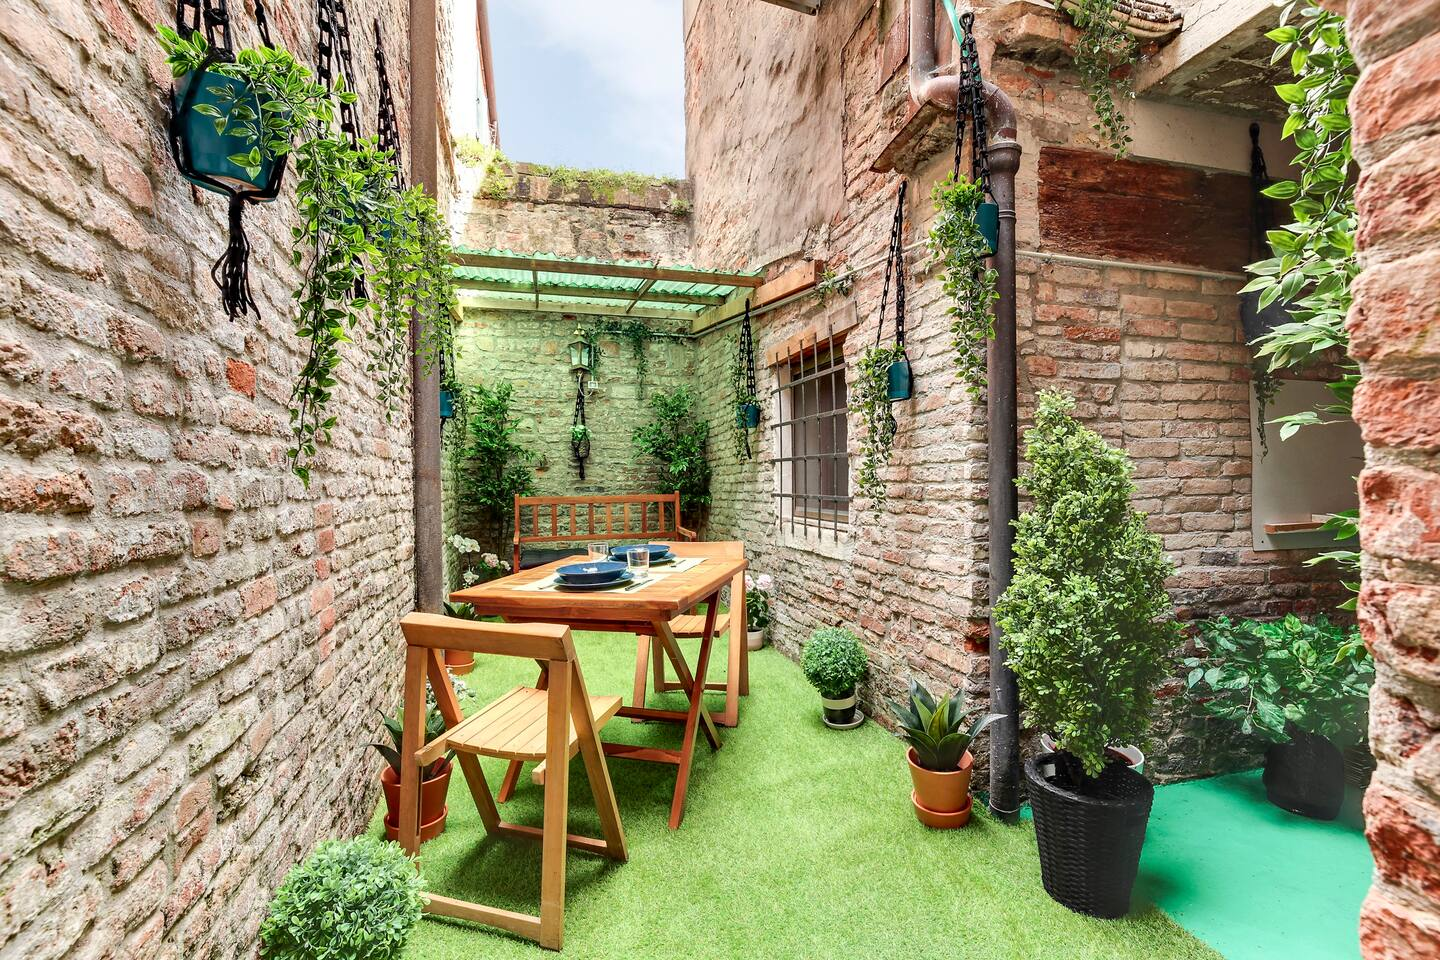 This private garden apartment is fantastic for a calm getaway!